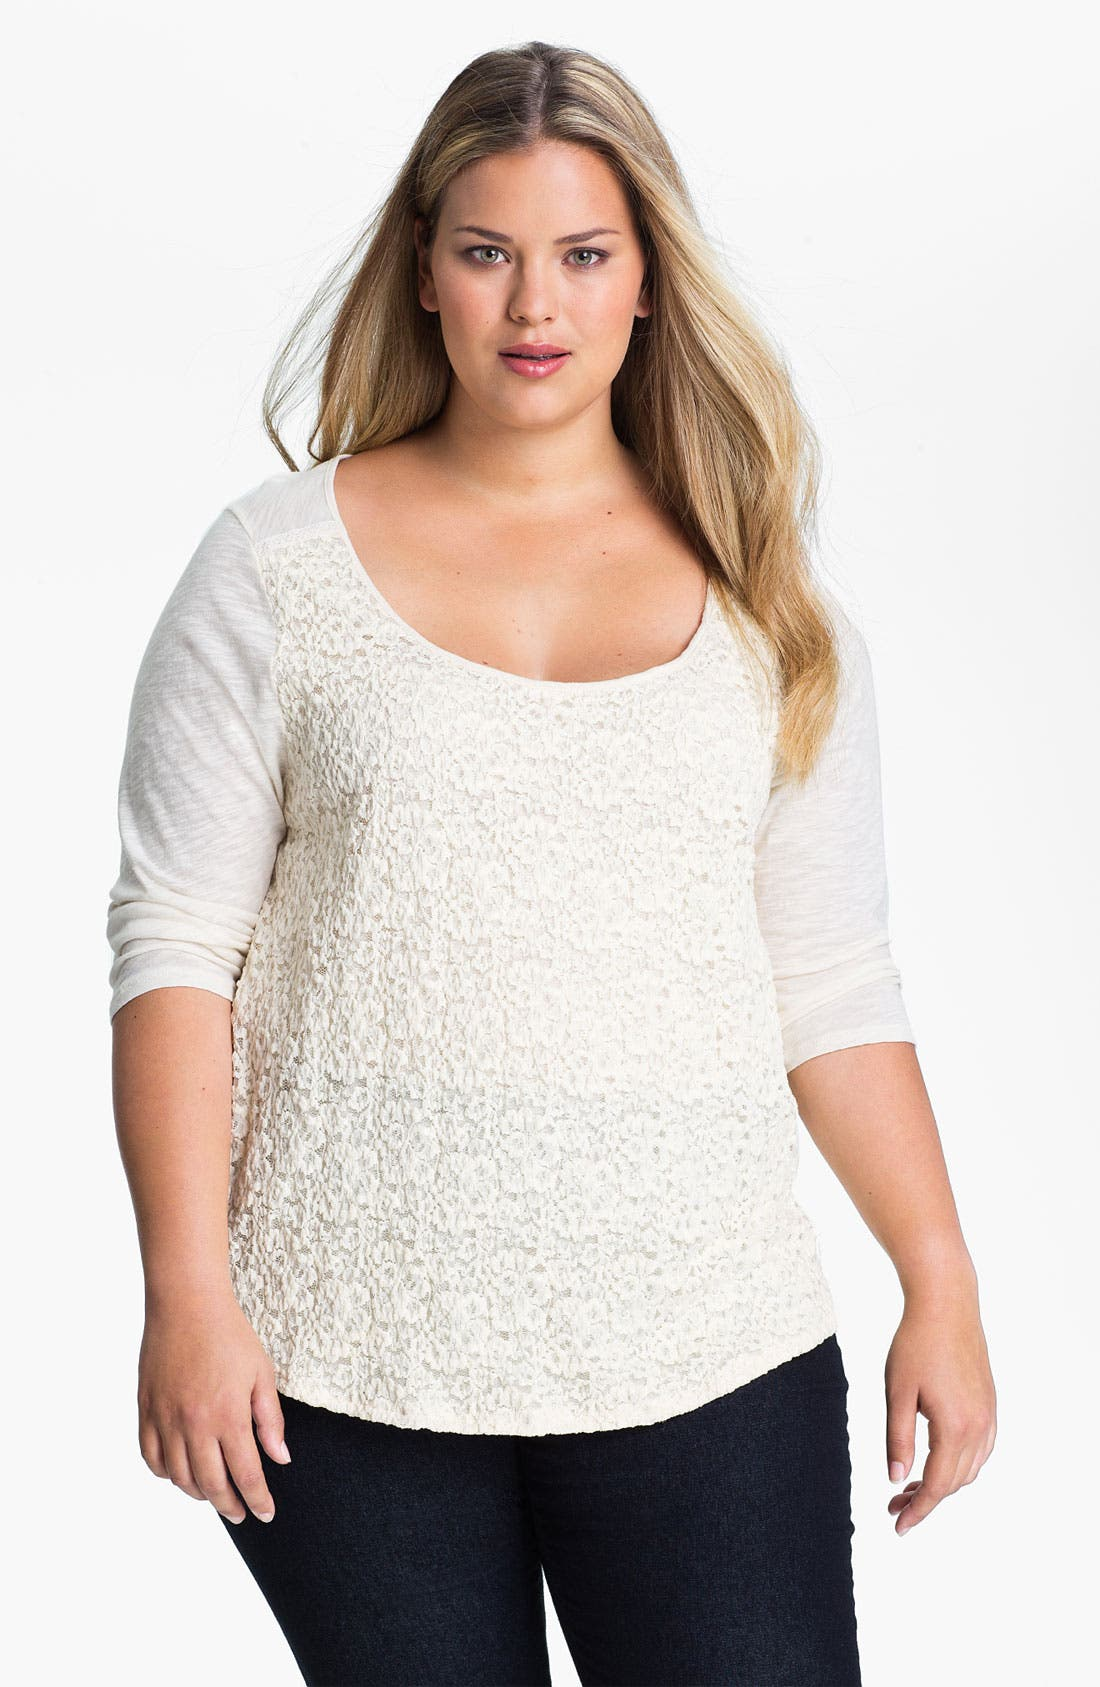 Alternate Image 1 Selected - Lucky Brand 'Lillian' Lace Tee (Plus)